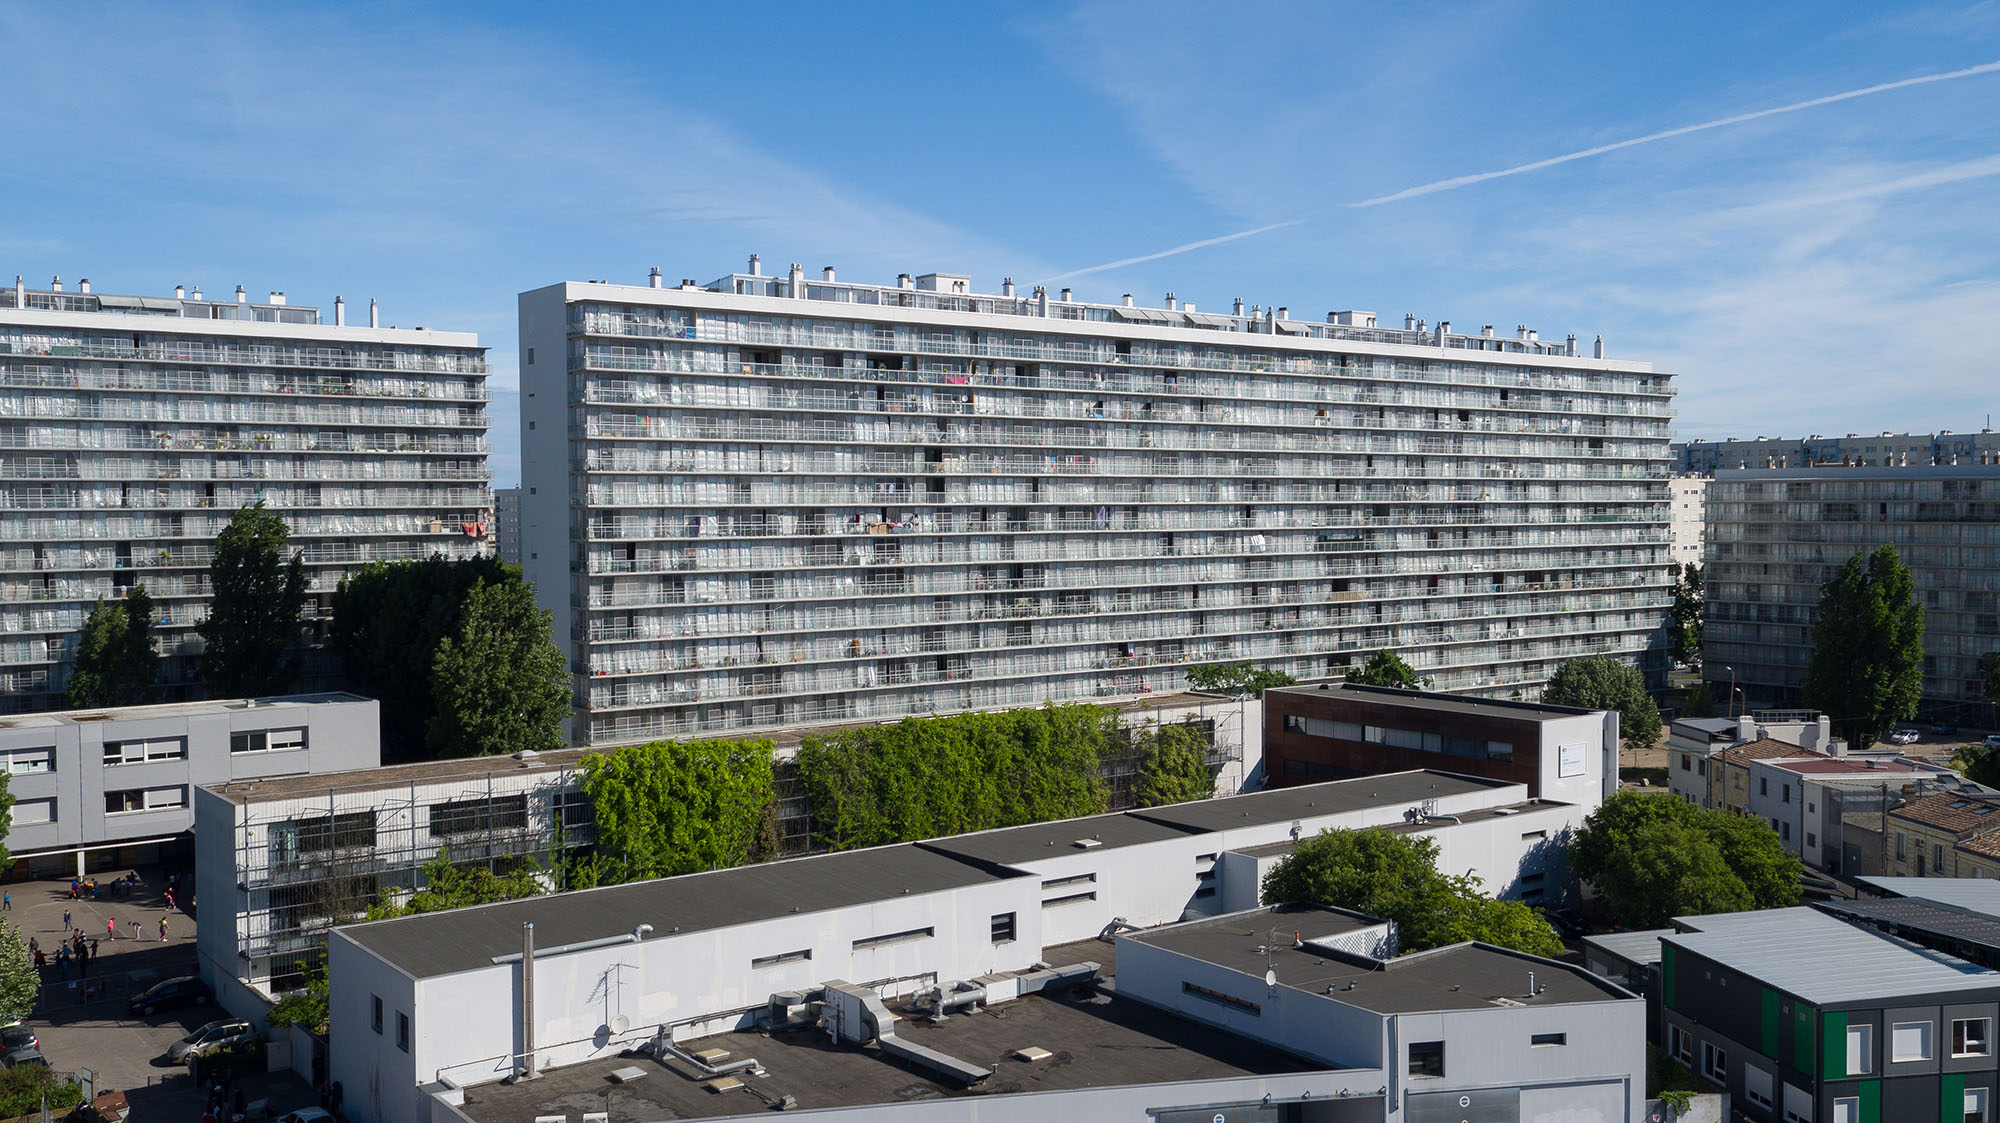 Transformation of G, H, I Buildings, Grand Parc, 530 Units, Social Housing (with Frédéric Druot and Christophe Hutin), photo courtesy of Philippe Ruault